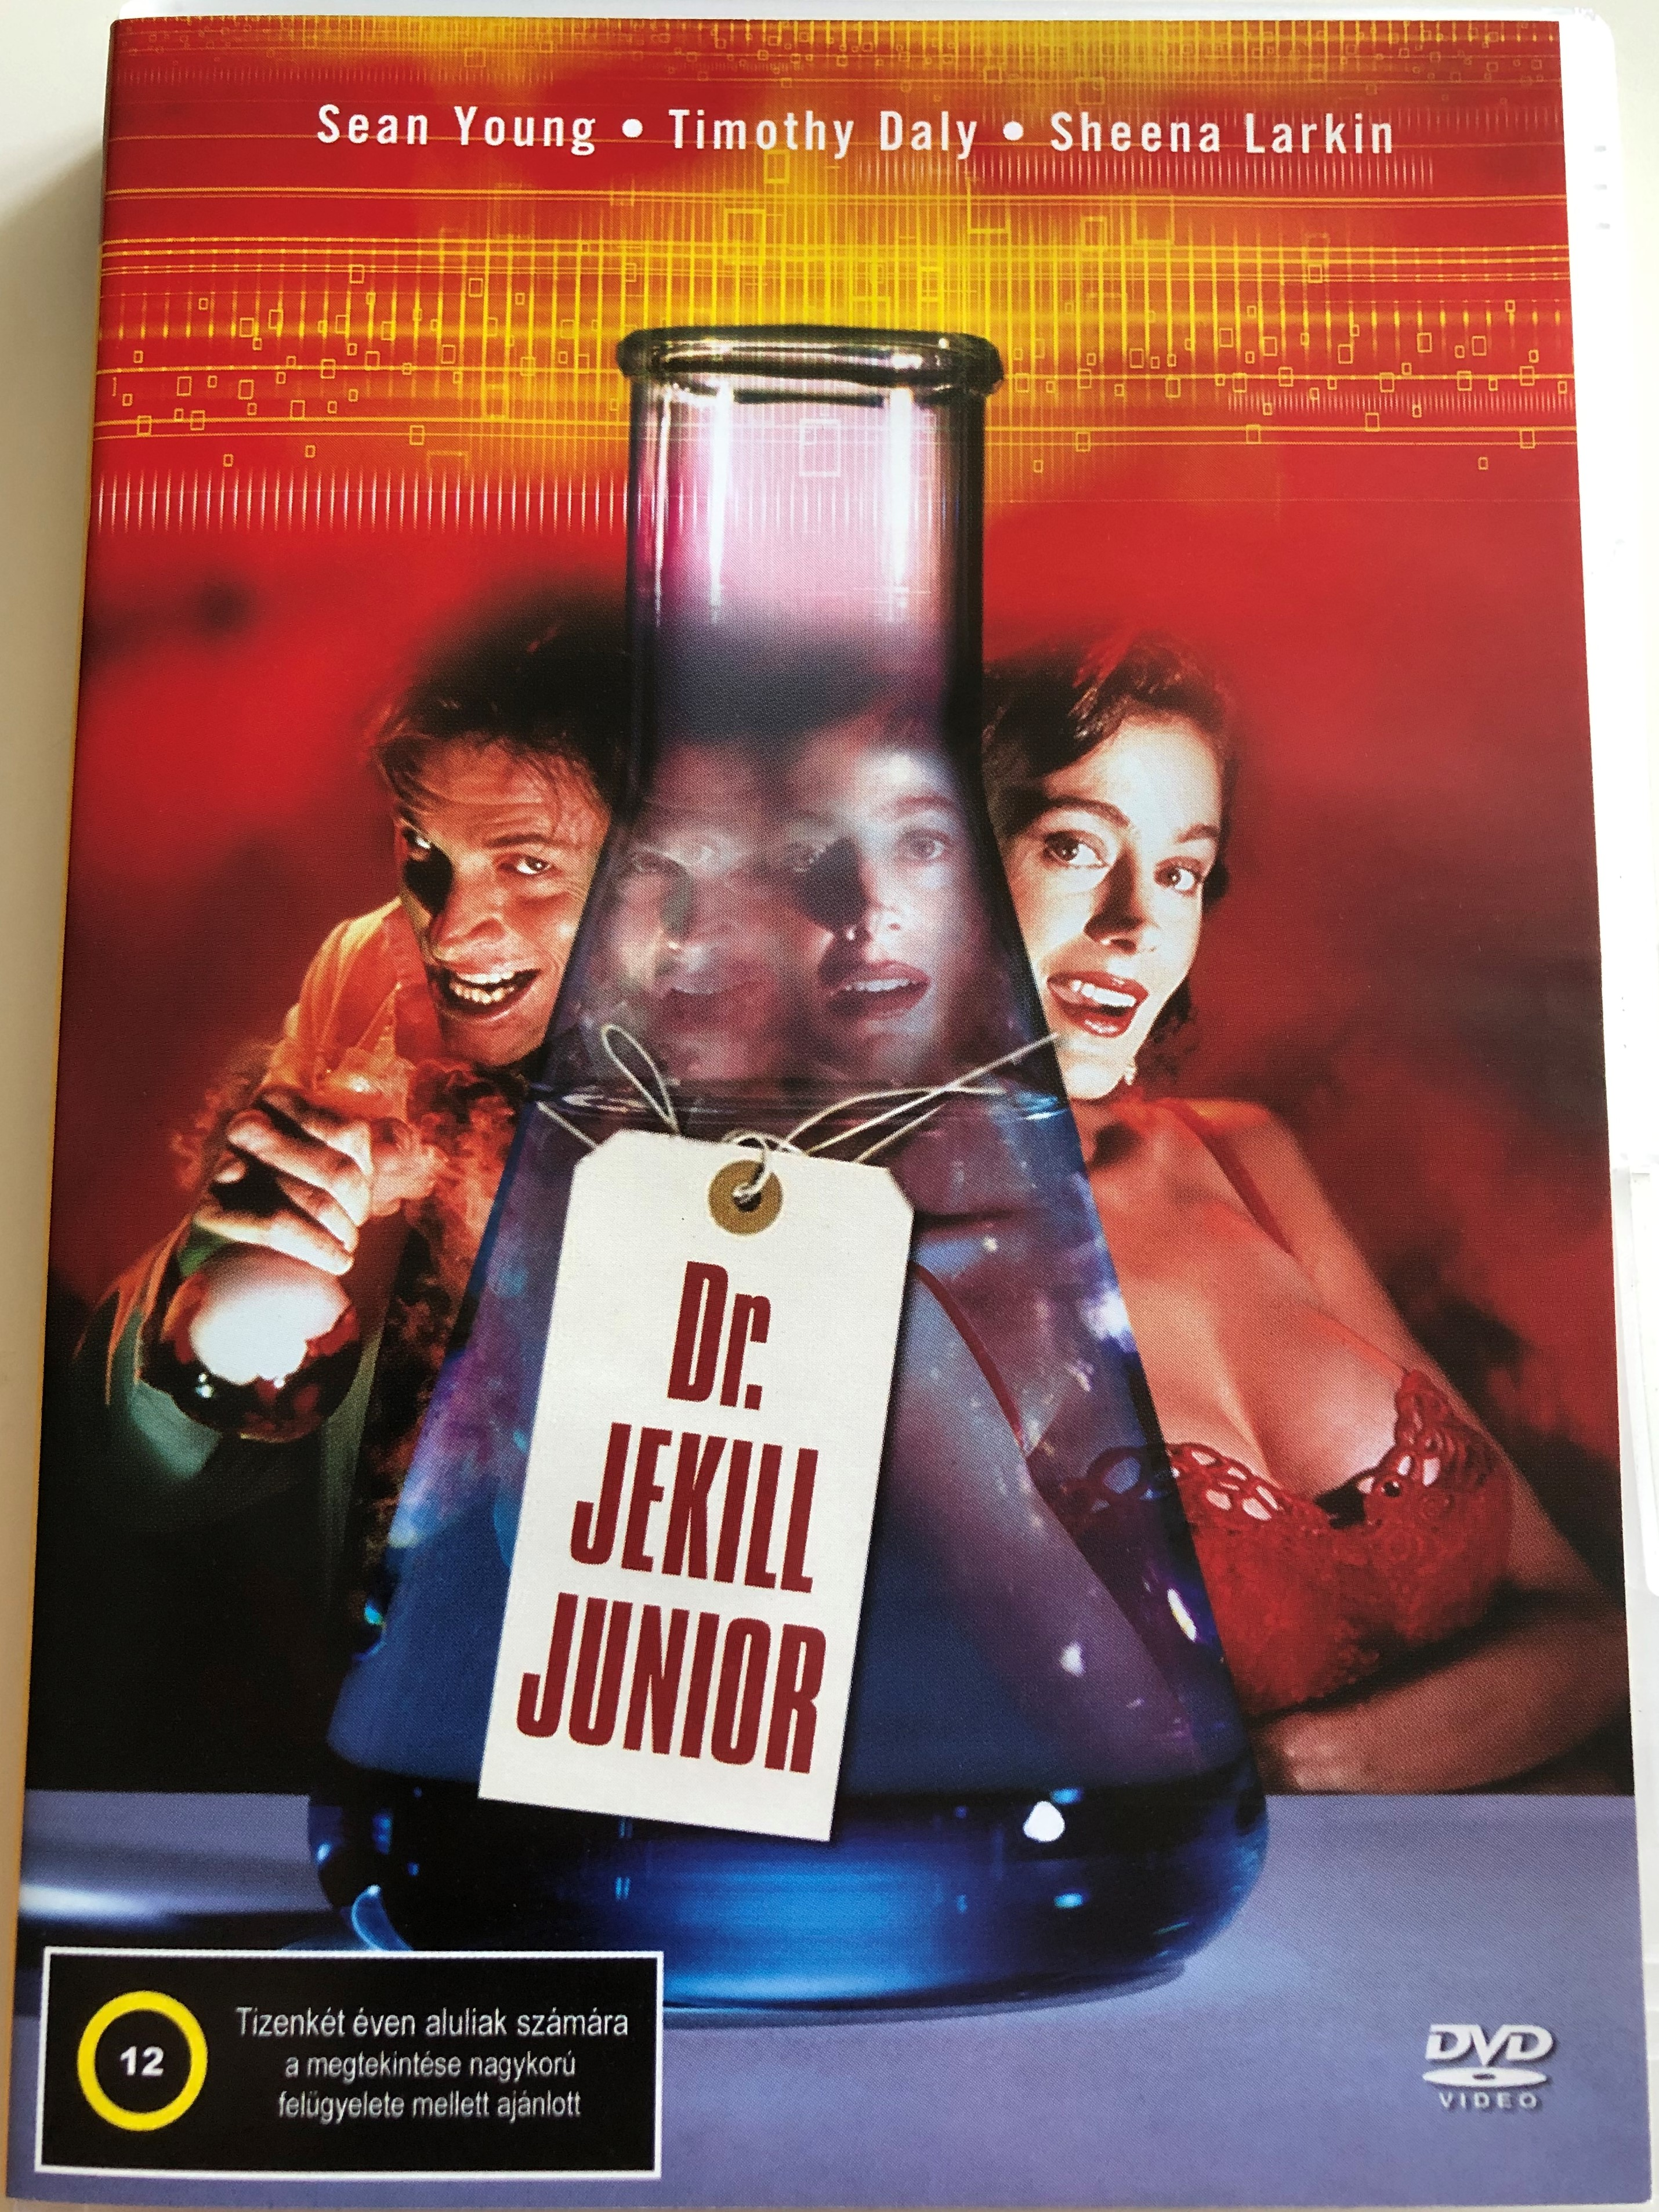 dr.-jekyll-and-ms.-hyde-dvd-1995-dr.-jekill-junior-directed-by-david-price-starring-sean-young-tim-daly-lysette-anthony-harvey-fierstein-stephen-tobolowsky-jeremy-piven-1-.jpg